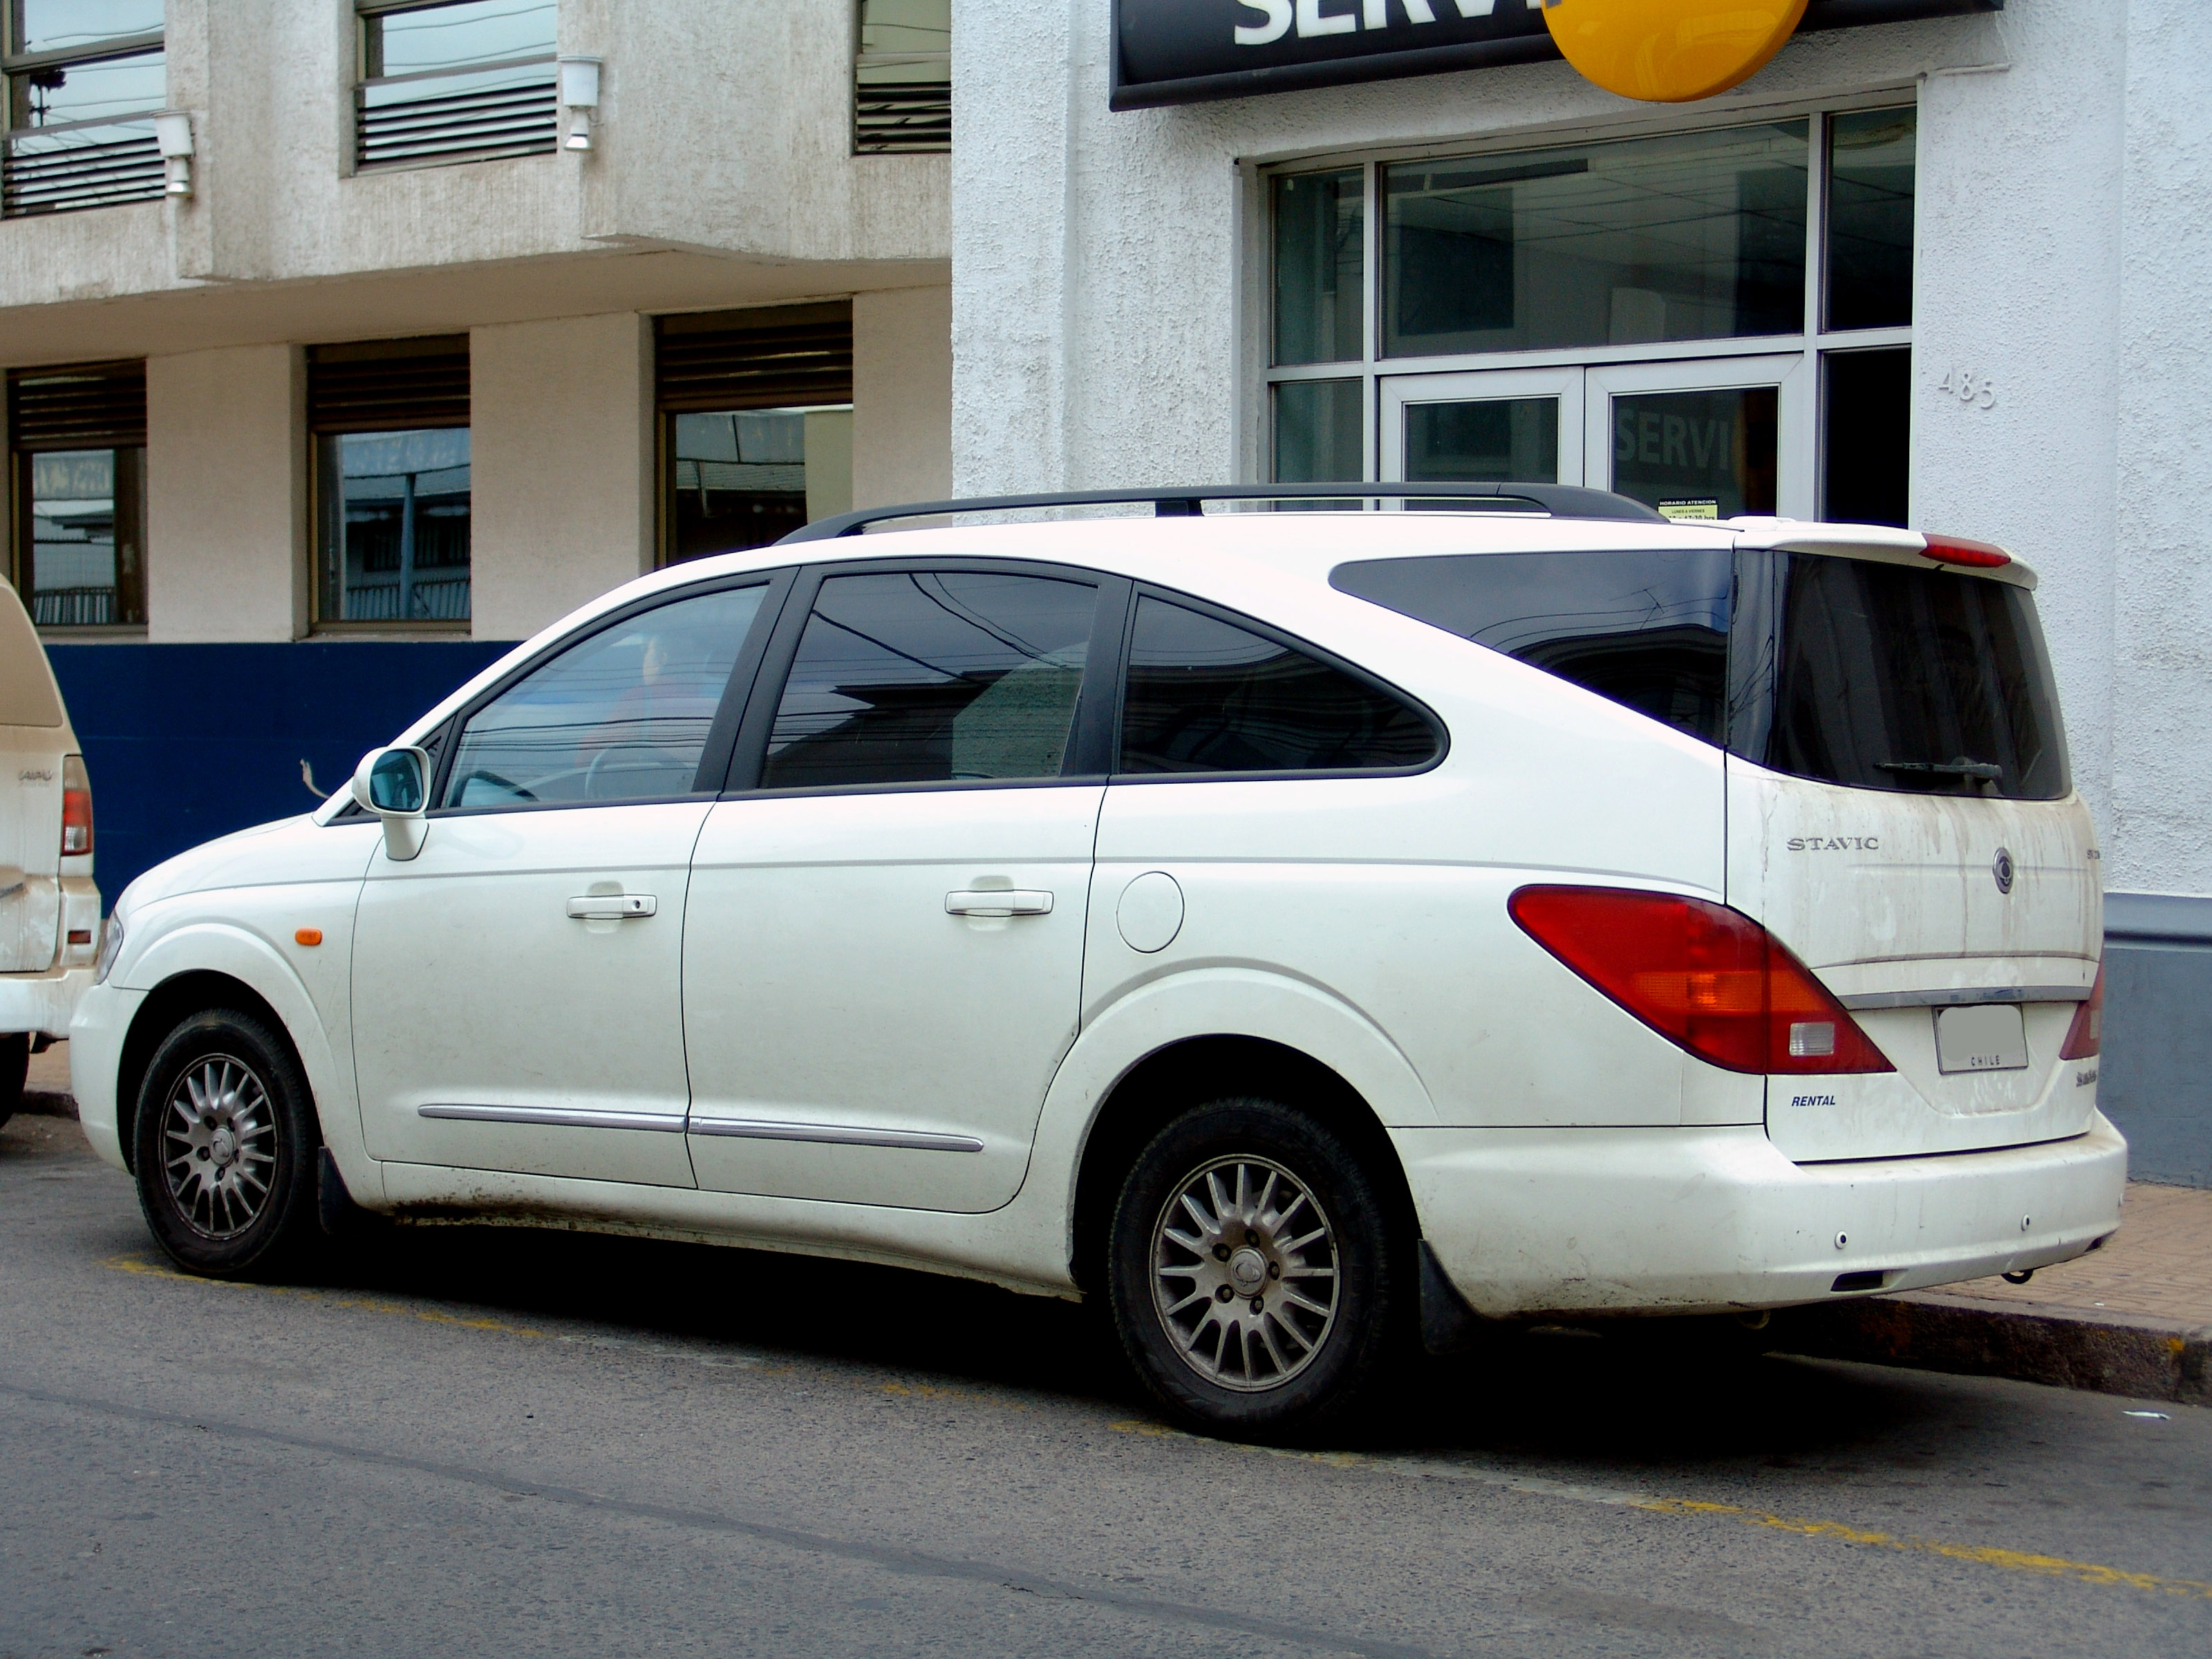 2012 Ssangyong Stavic #5